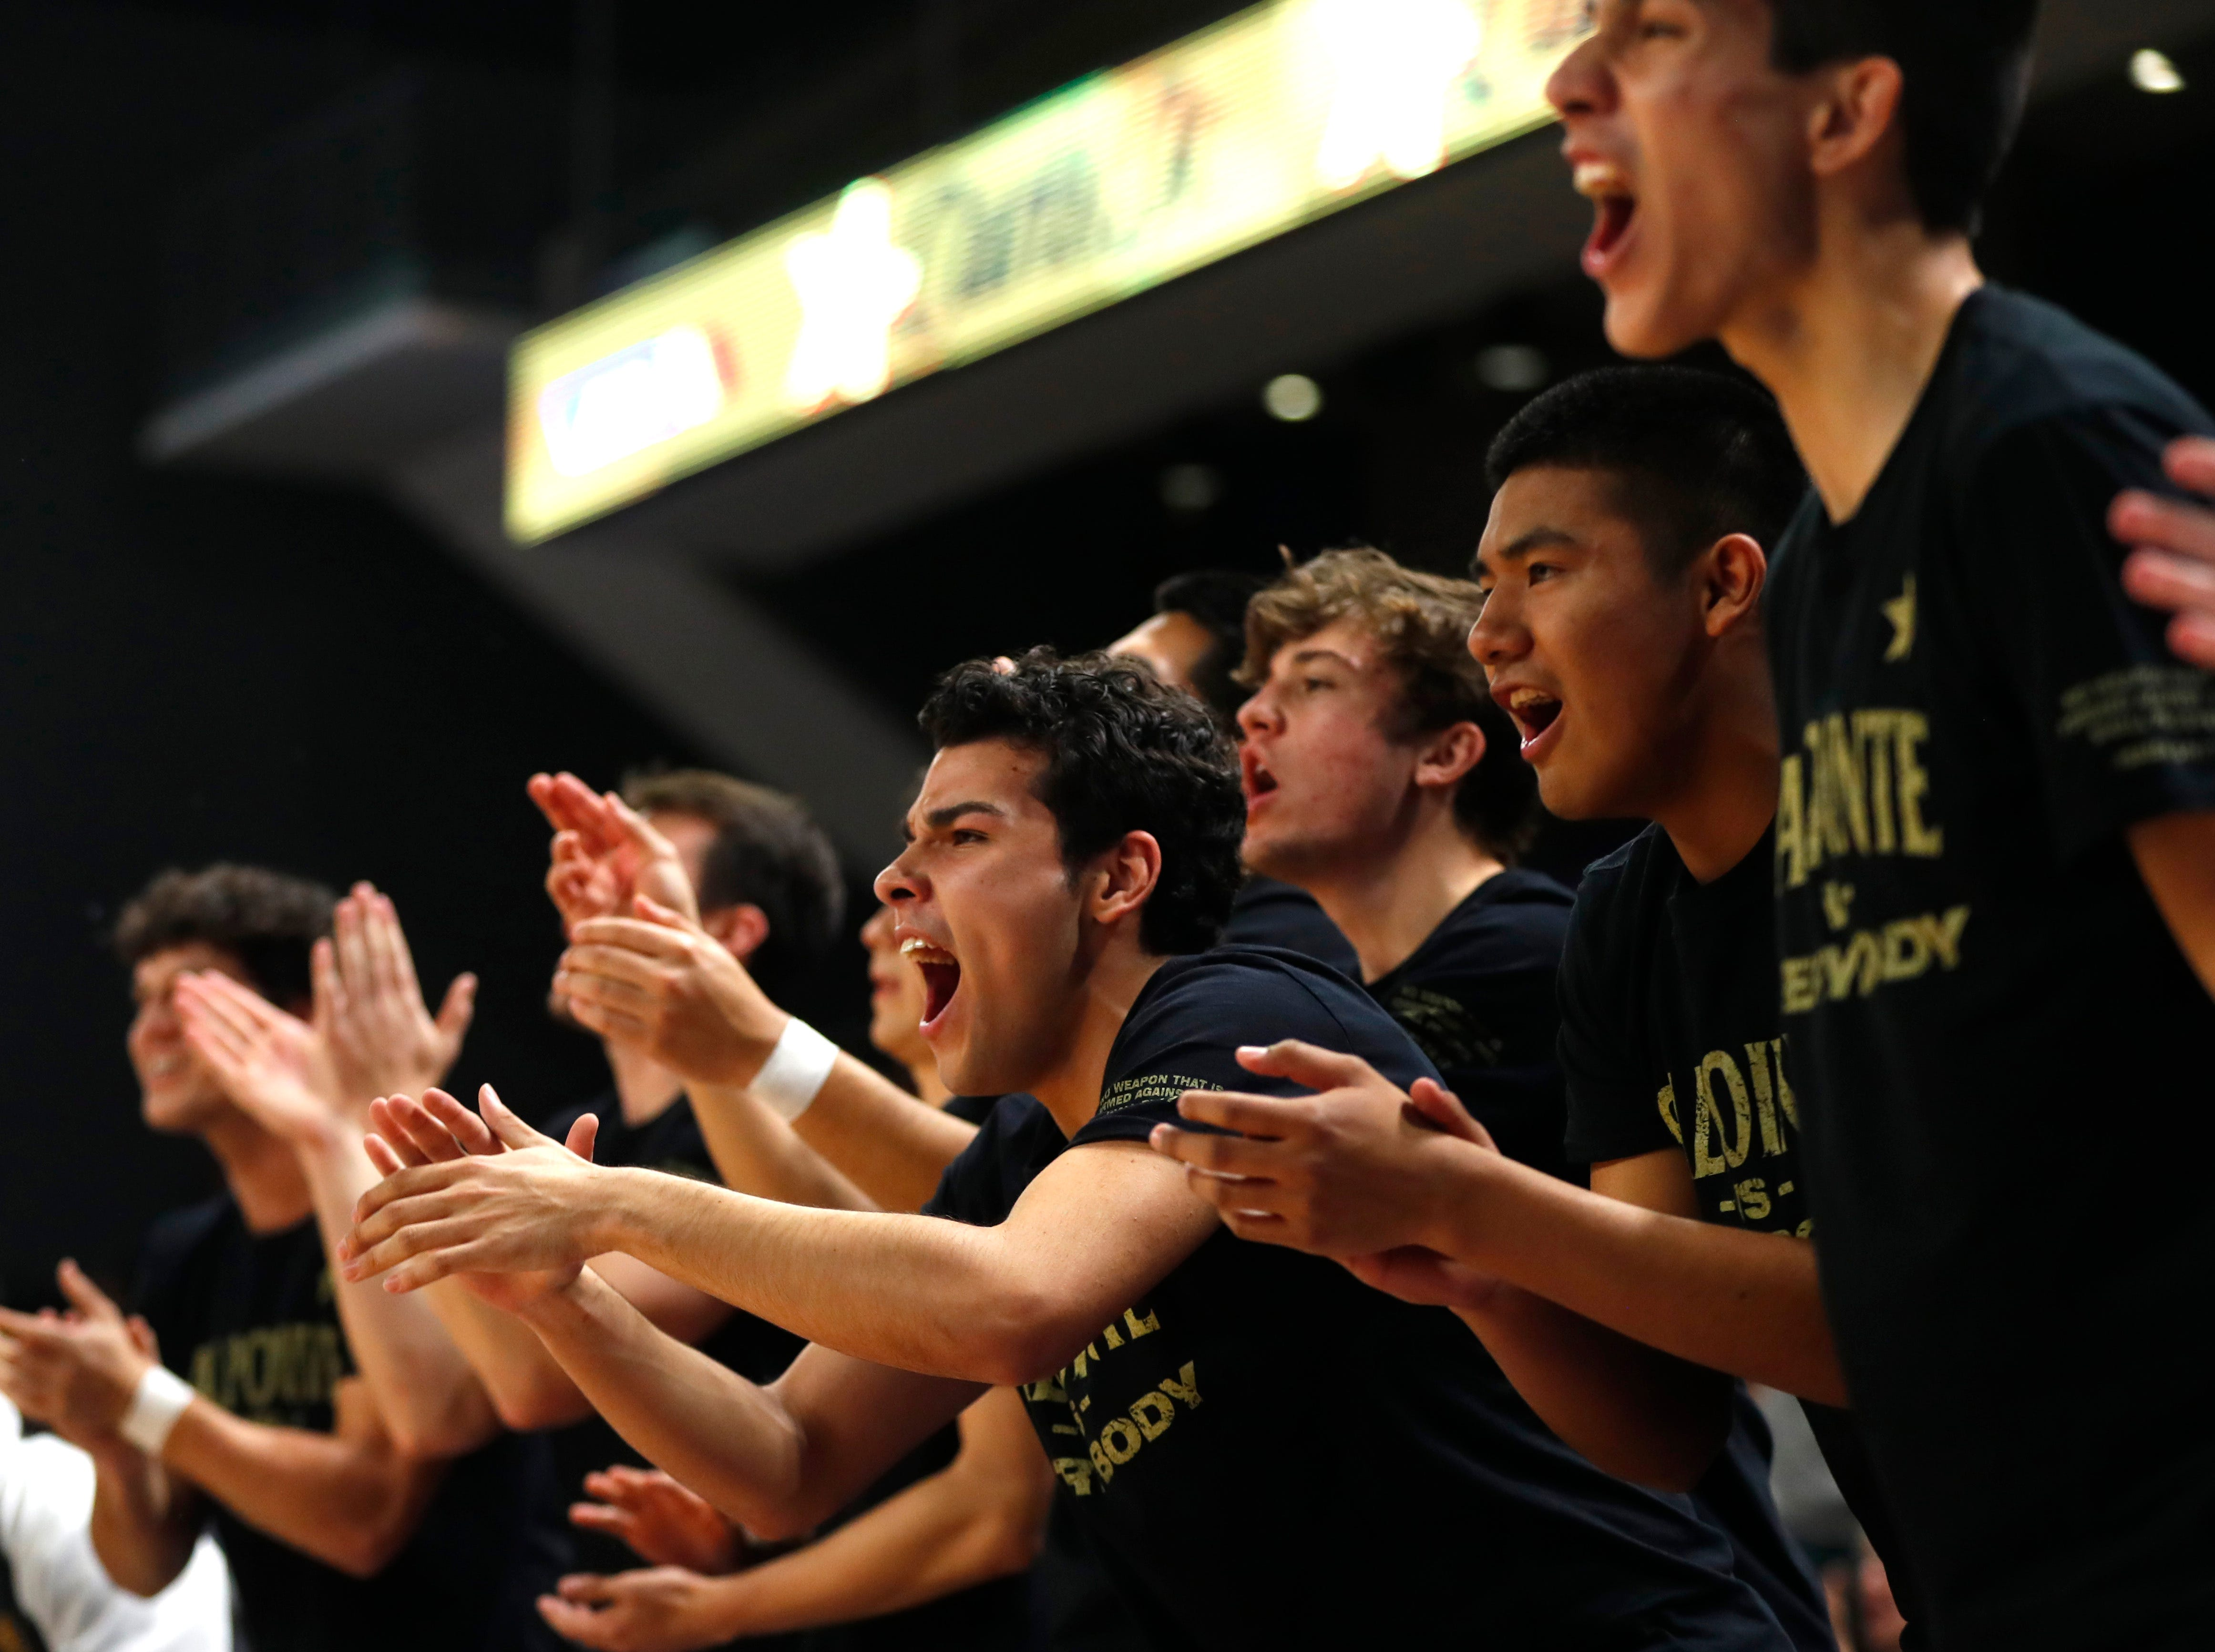 Salpointe Catholic's bench reacts after a Shadow Mountain turnover during first half of the 4A boys basketball semifinal game at Grand Canyon University Arena in Phoenix, Ariz. on February 22, 2019.